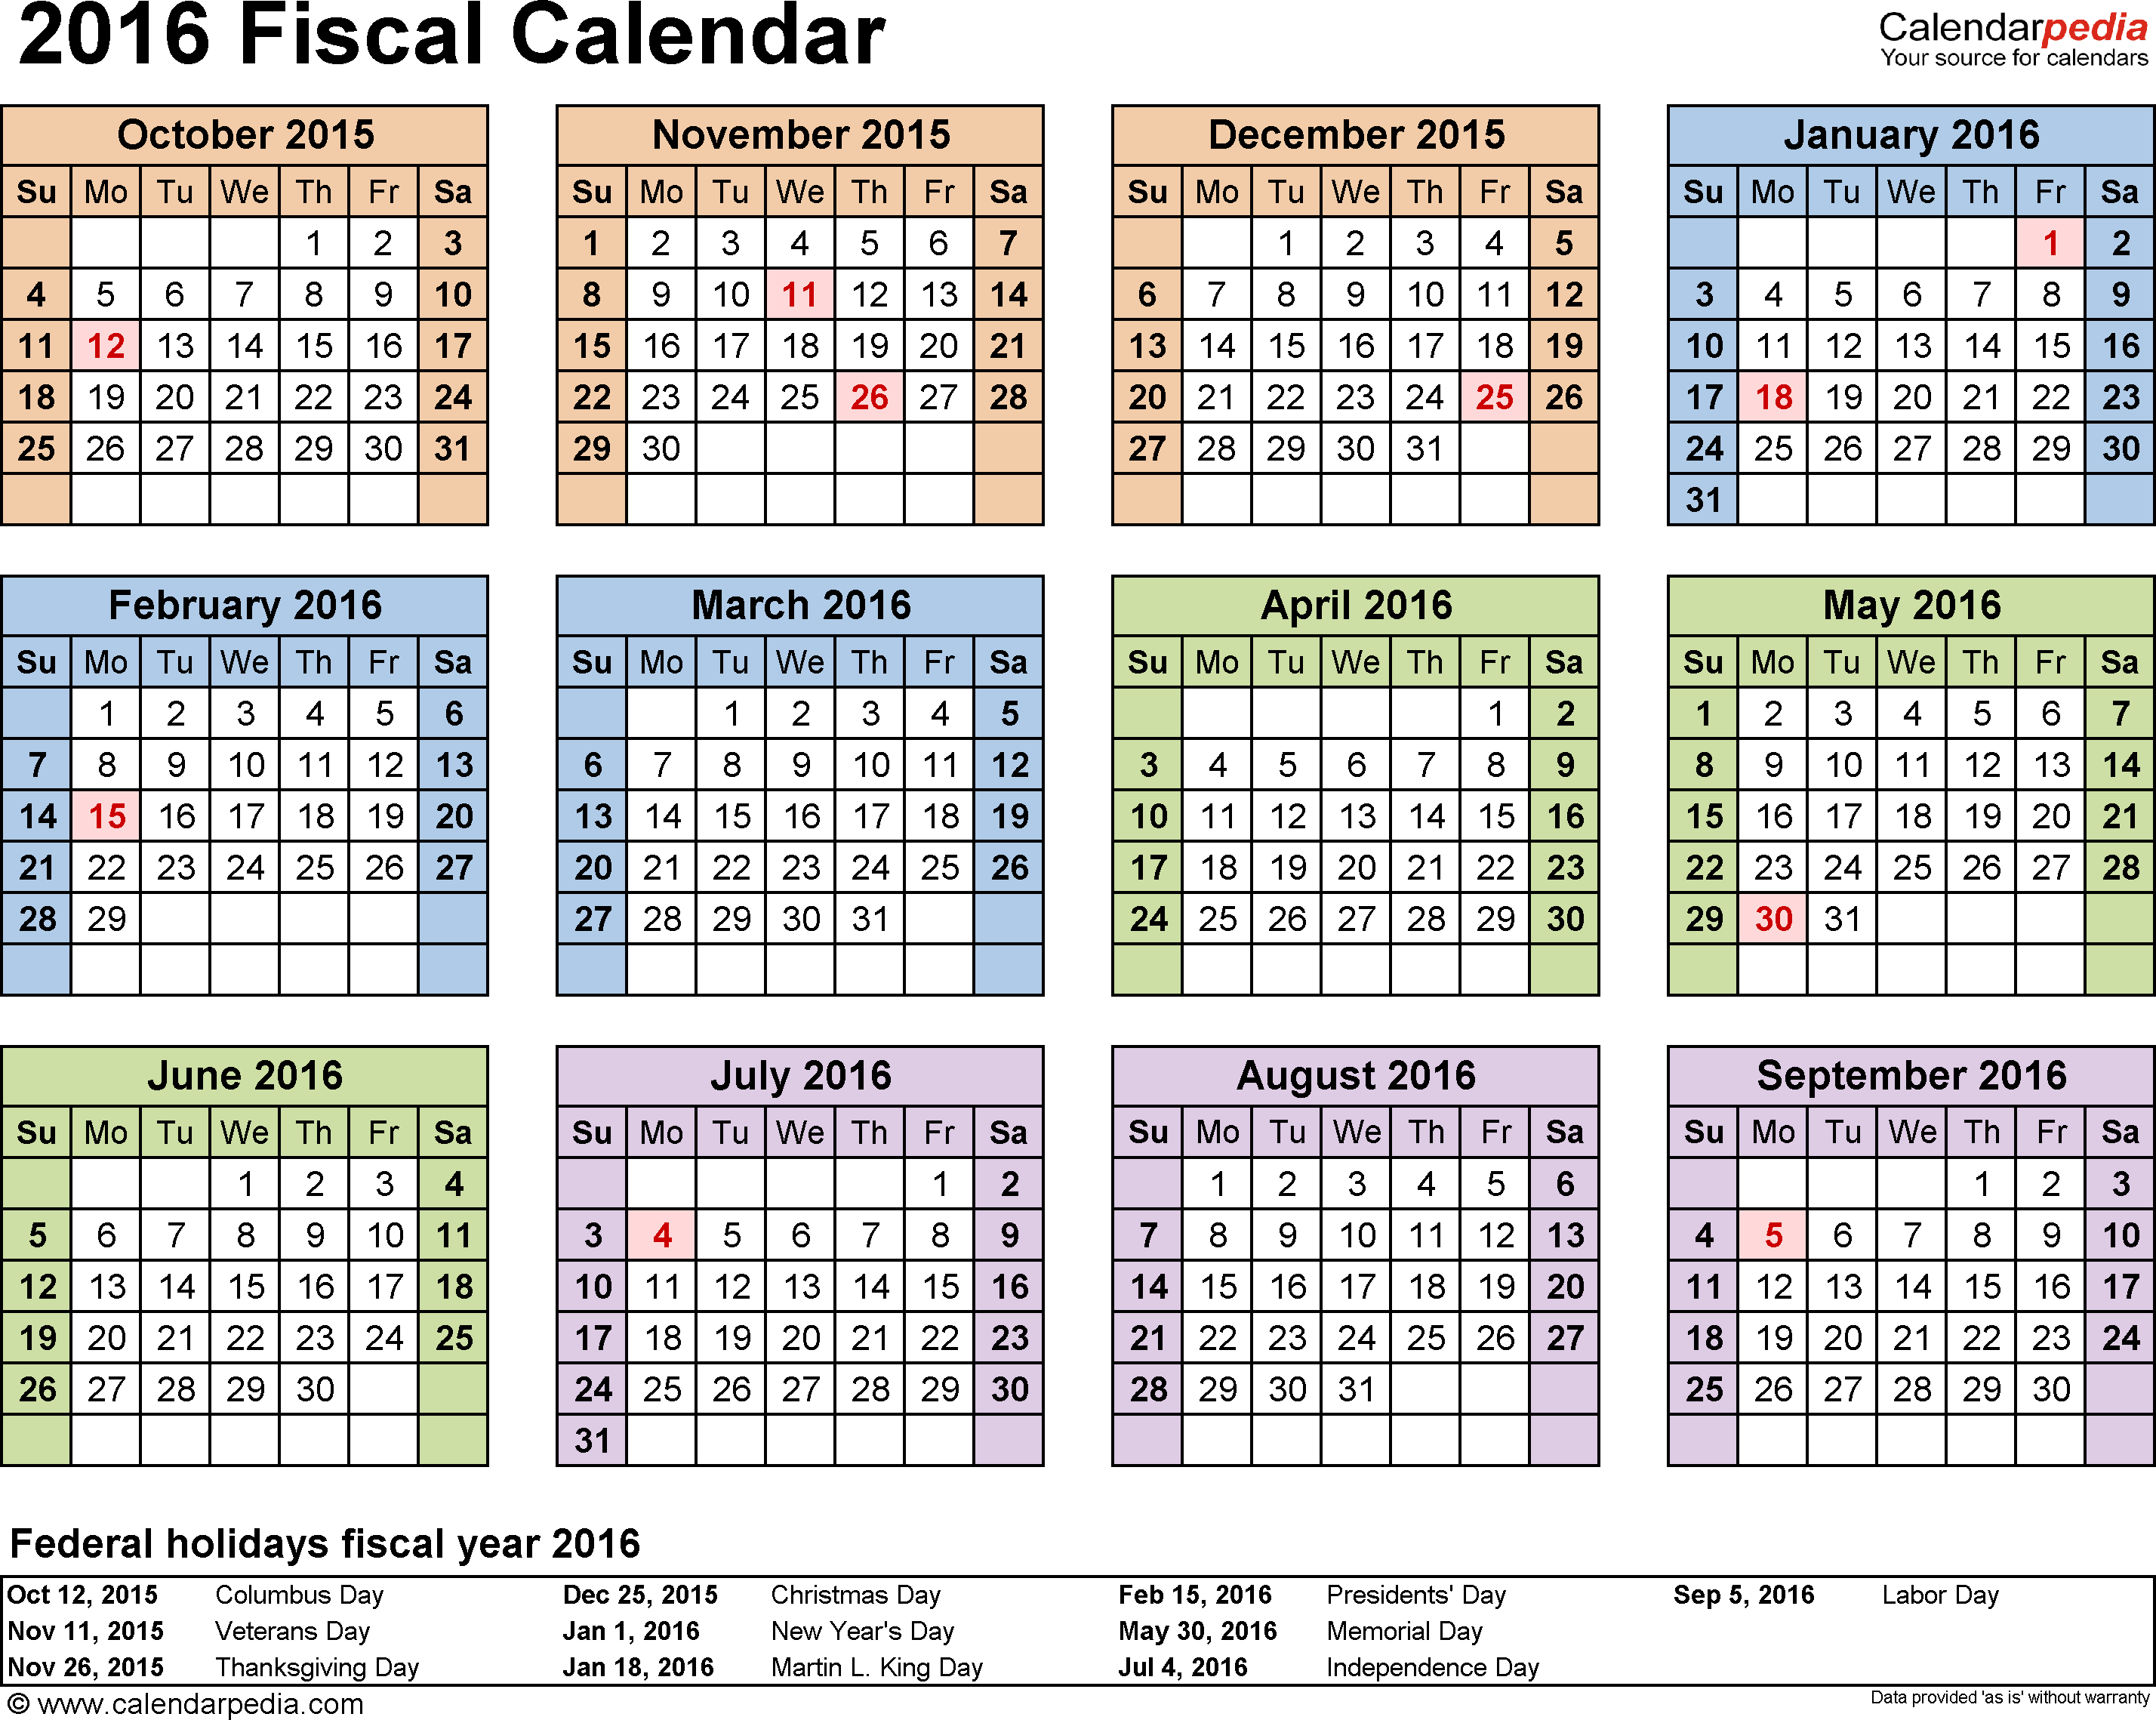 Download Template 4: Fiscal year calendar 2016 in PDF format, landscape, 1 page, year at a glance